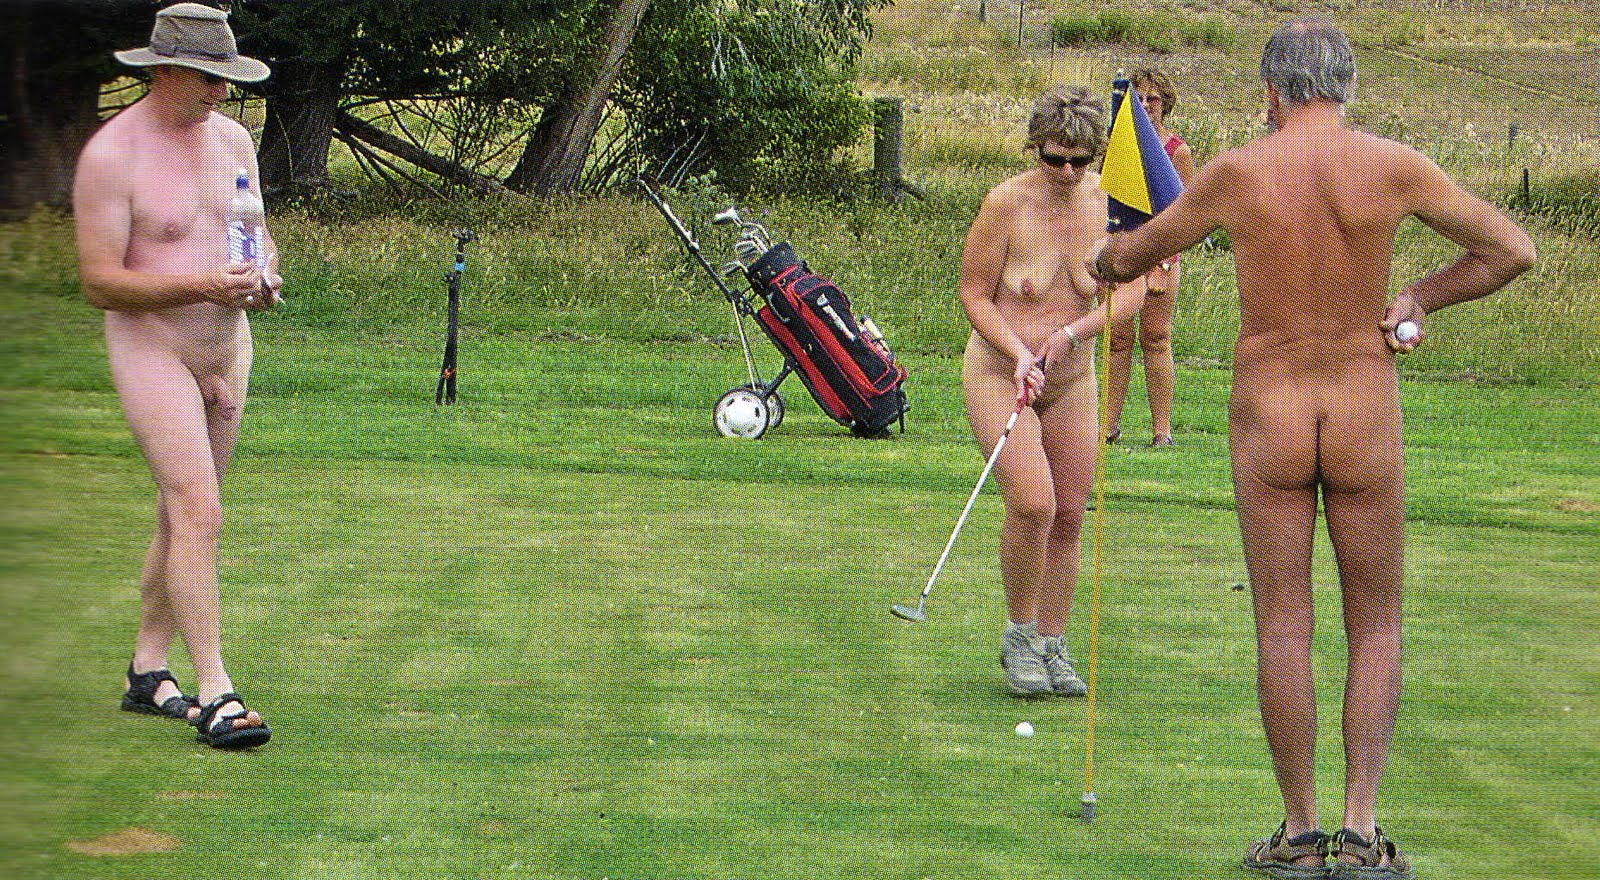 nudes-golf-nude-sex-porn-ass-shot-from-the-back